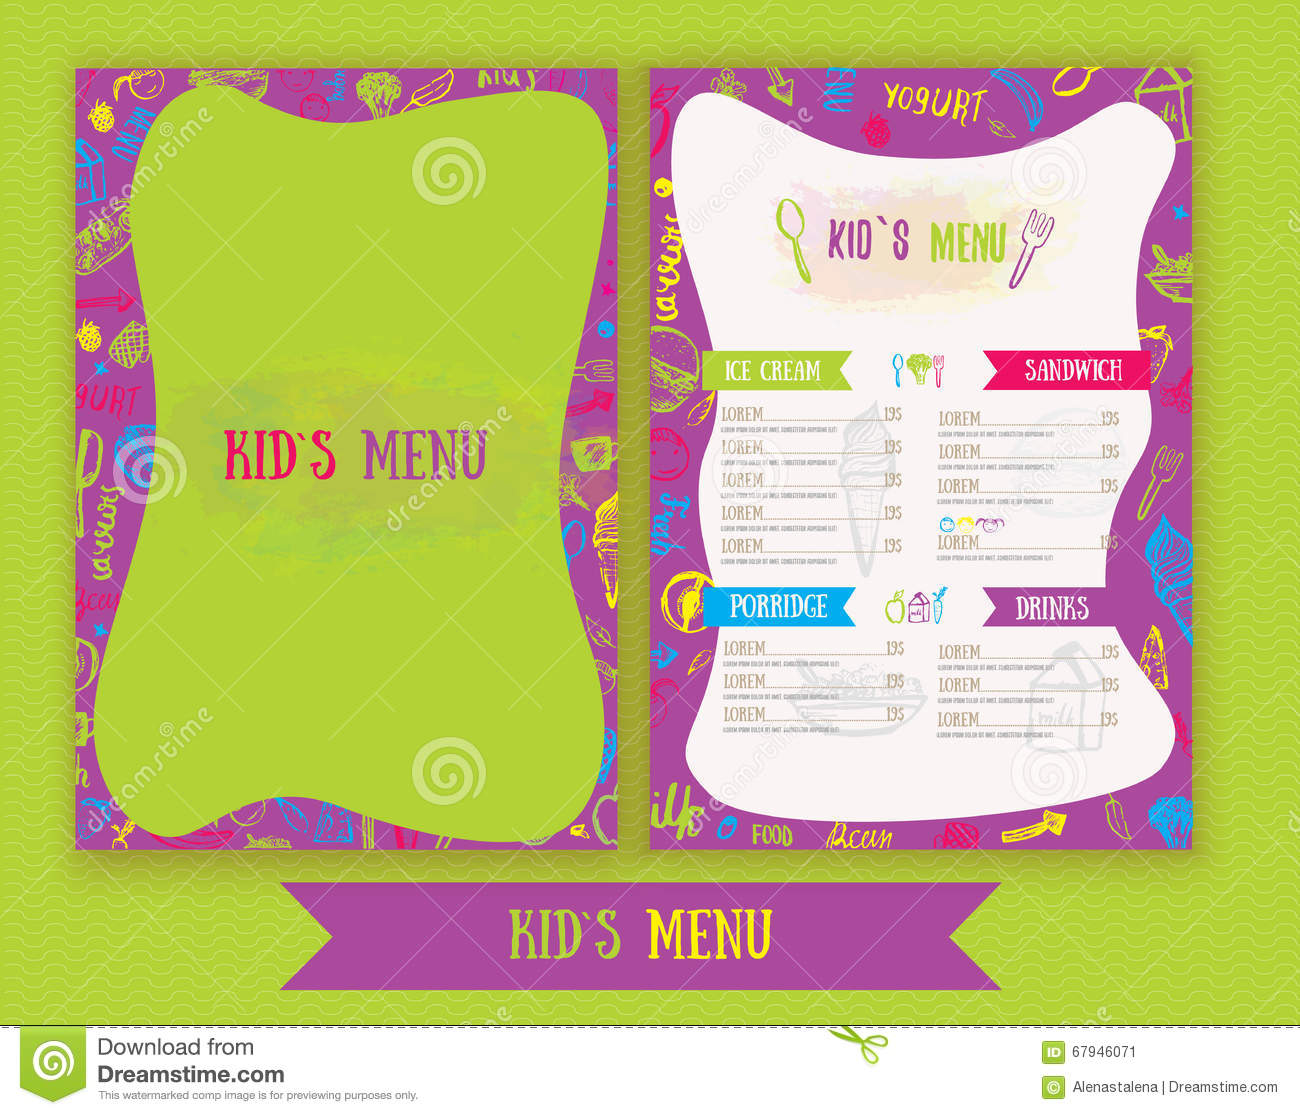 Kids Menu Cute Colorful Hand Drawn Vector Template Kids Menu Kids Menu Cute  Colorful Hand Drawn Vector Template Kids Menu Design Party Cafe Creative  Kids ...  Free Kids Menu Templates